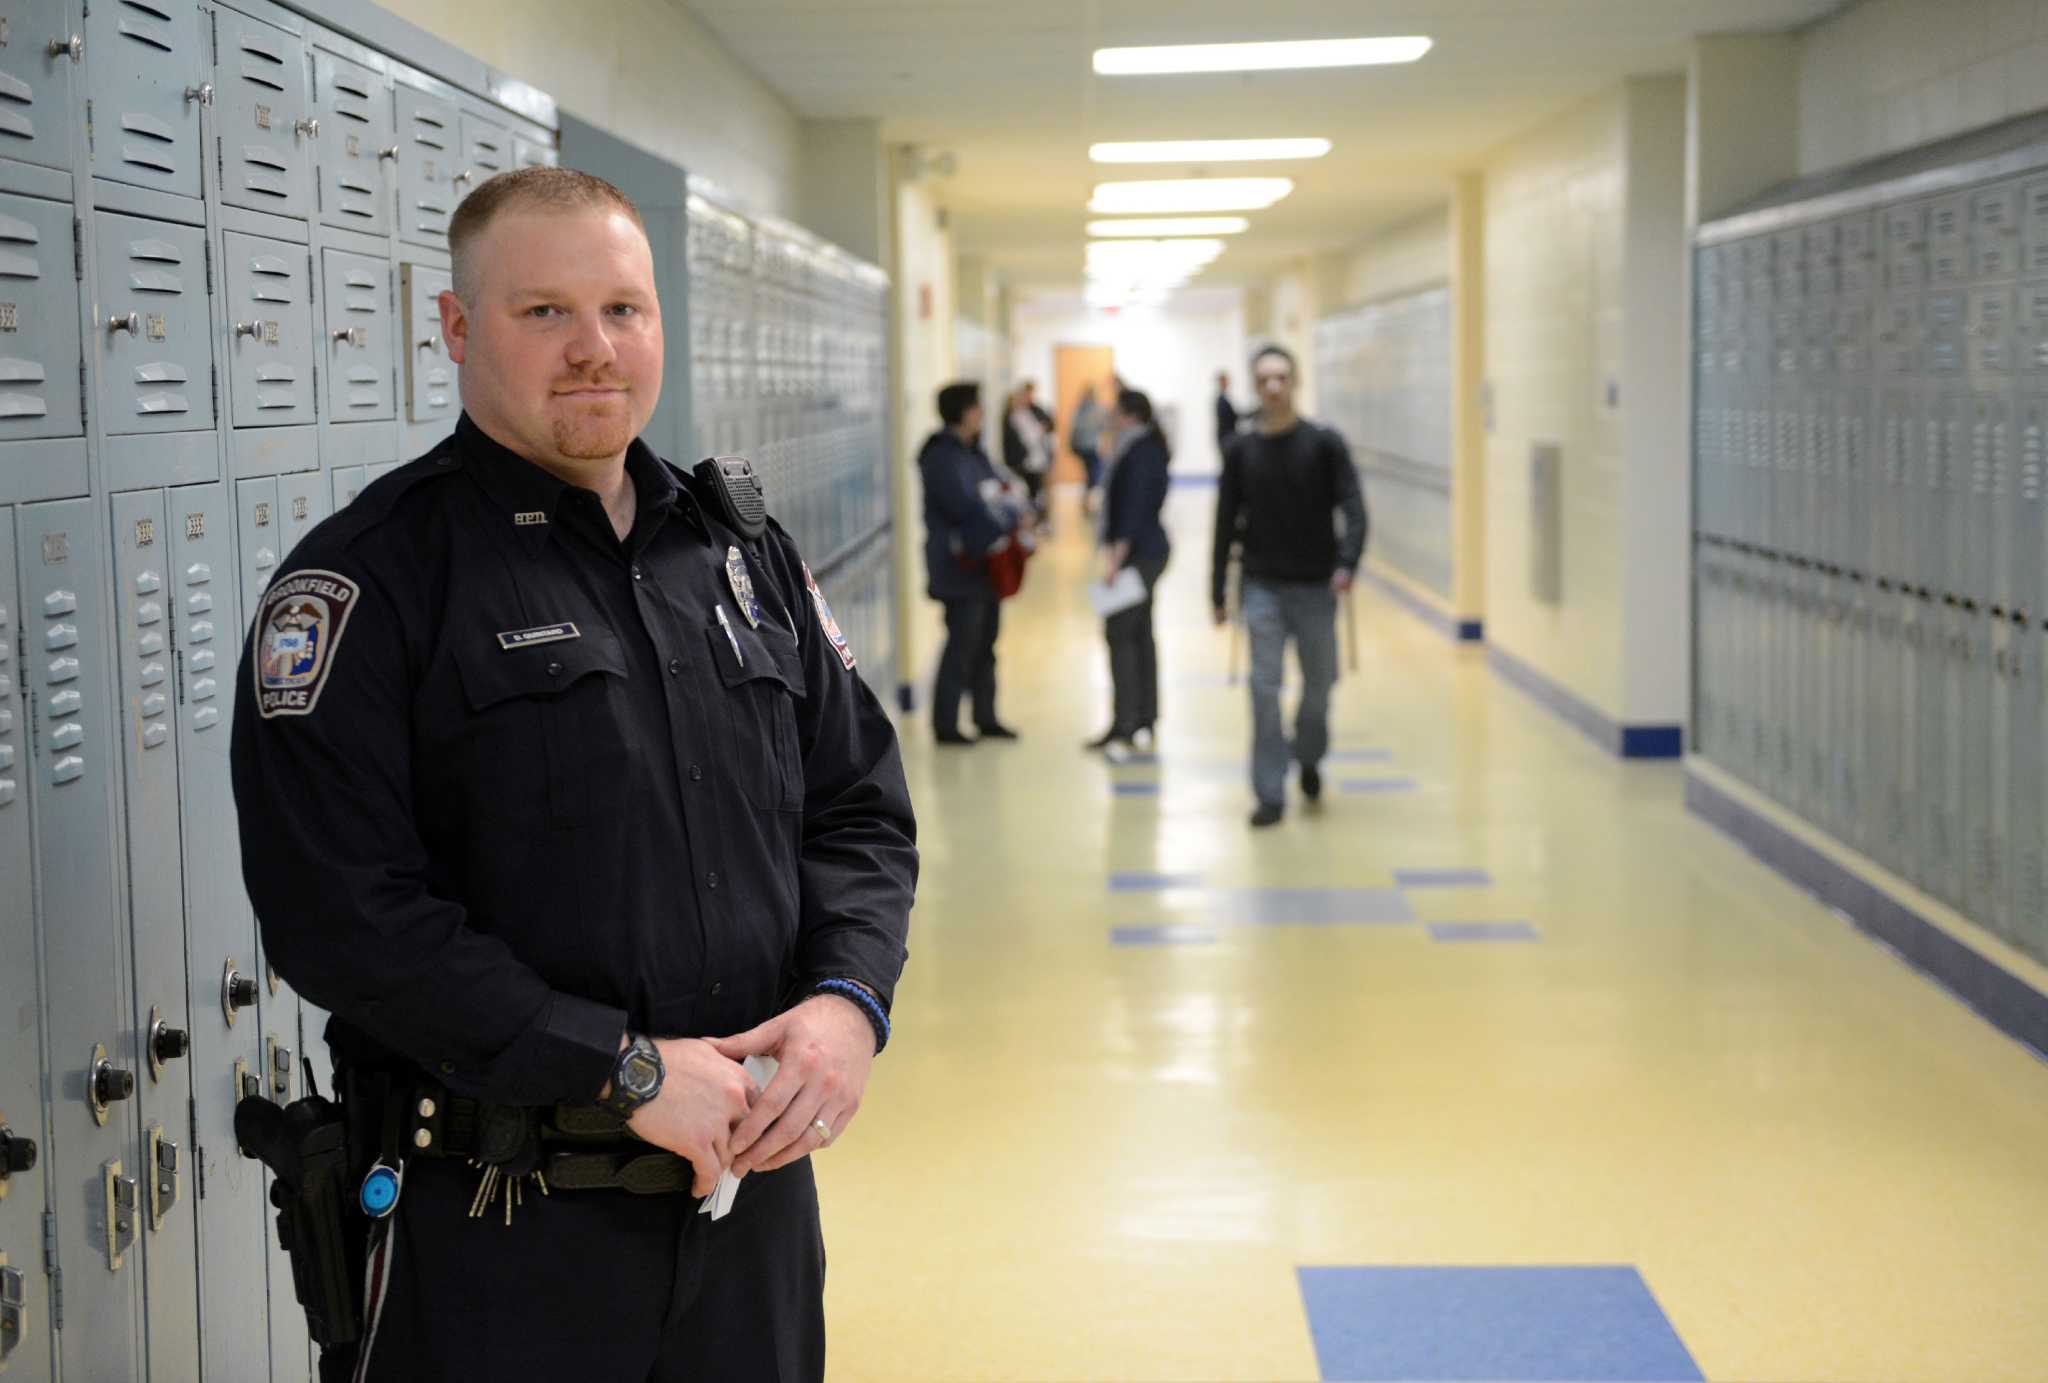 School security cost caught in budget dispute  NewsTimes